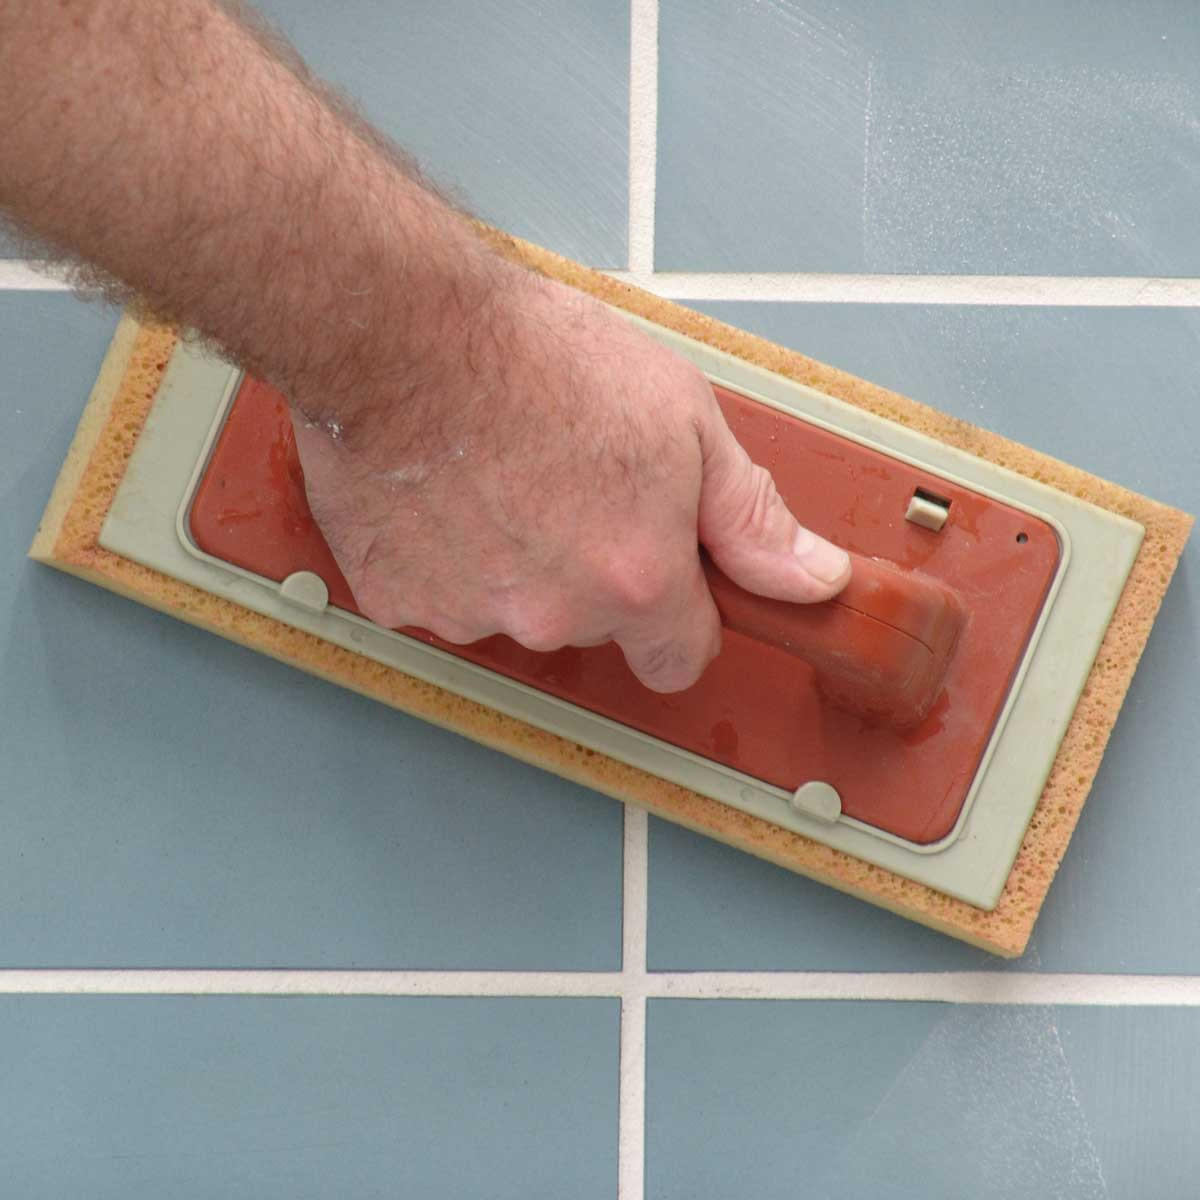 Raimondi Easy Grout swipe tile